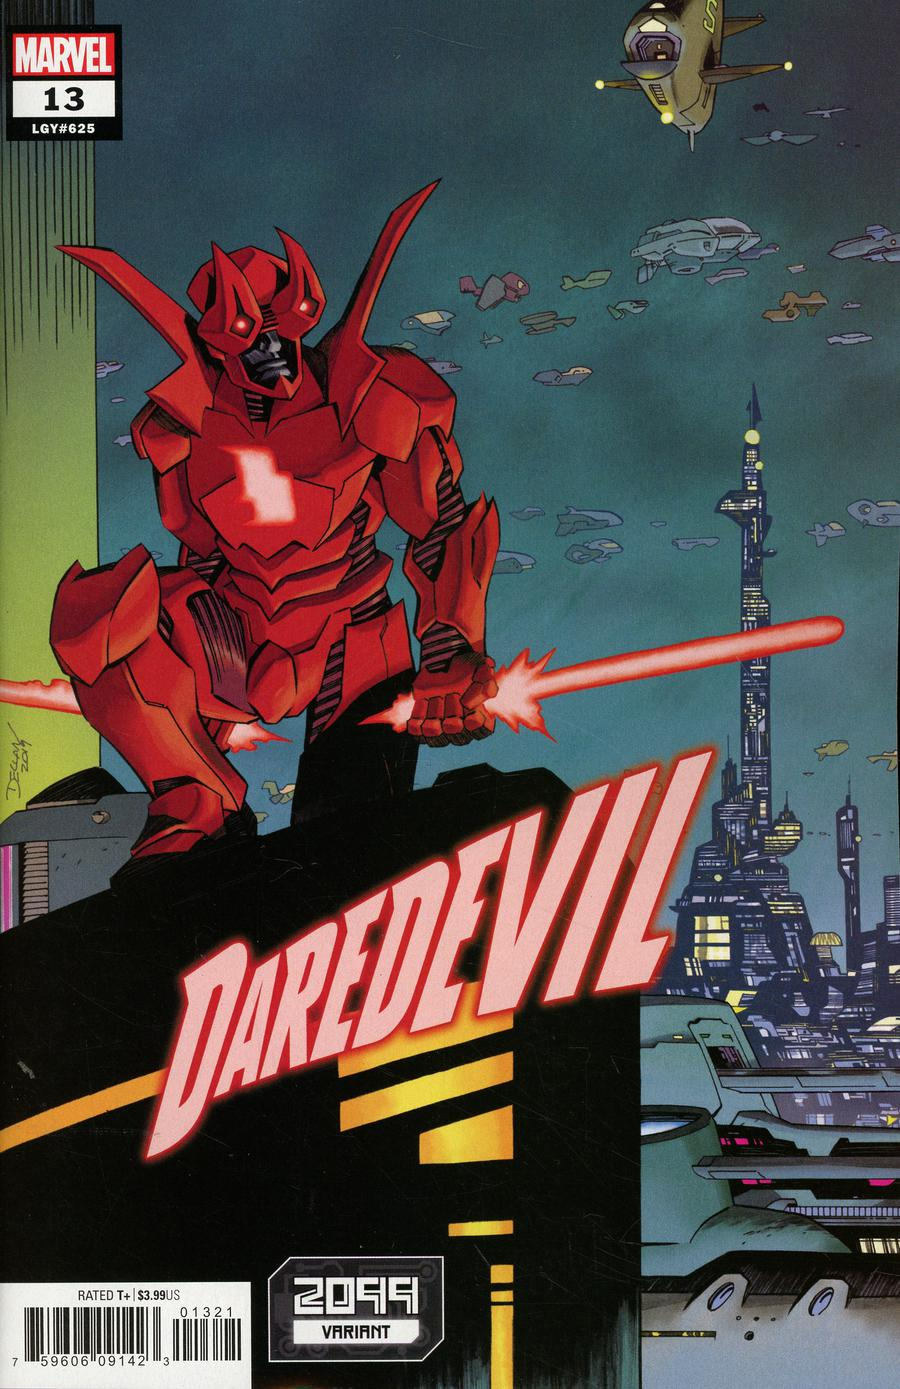 Daredevil Vol 6 #13 Cover B Variant Declan Shalvey 2099 Cover